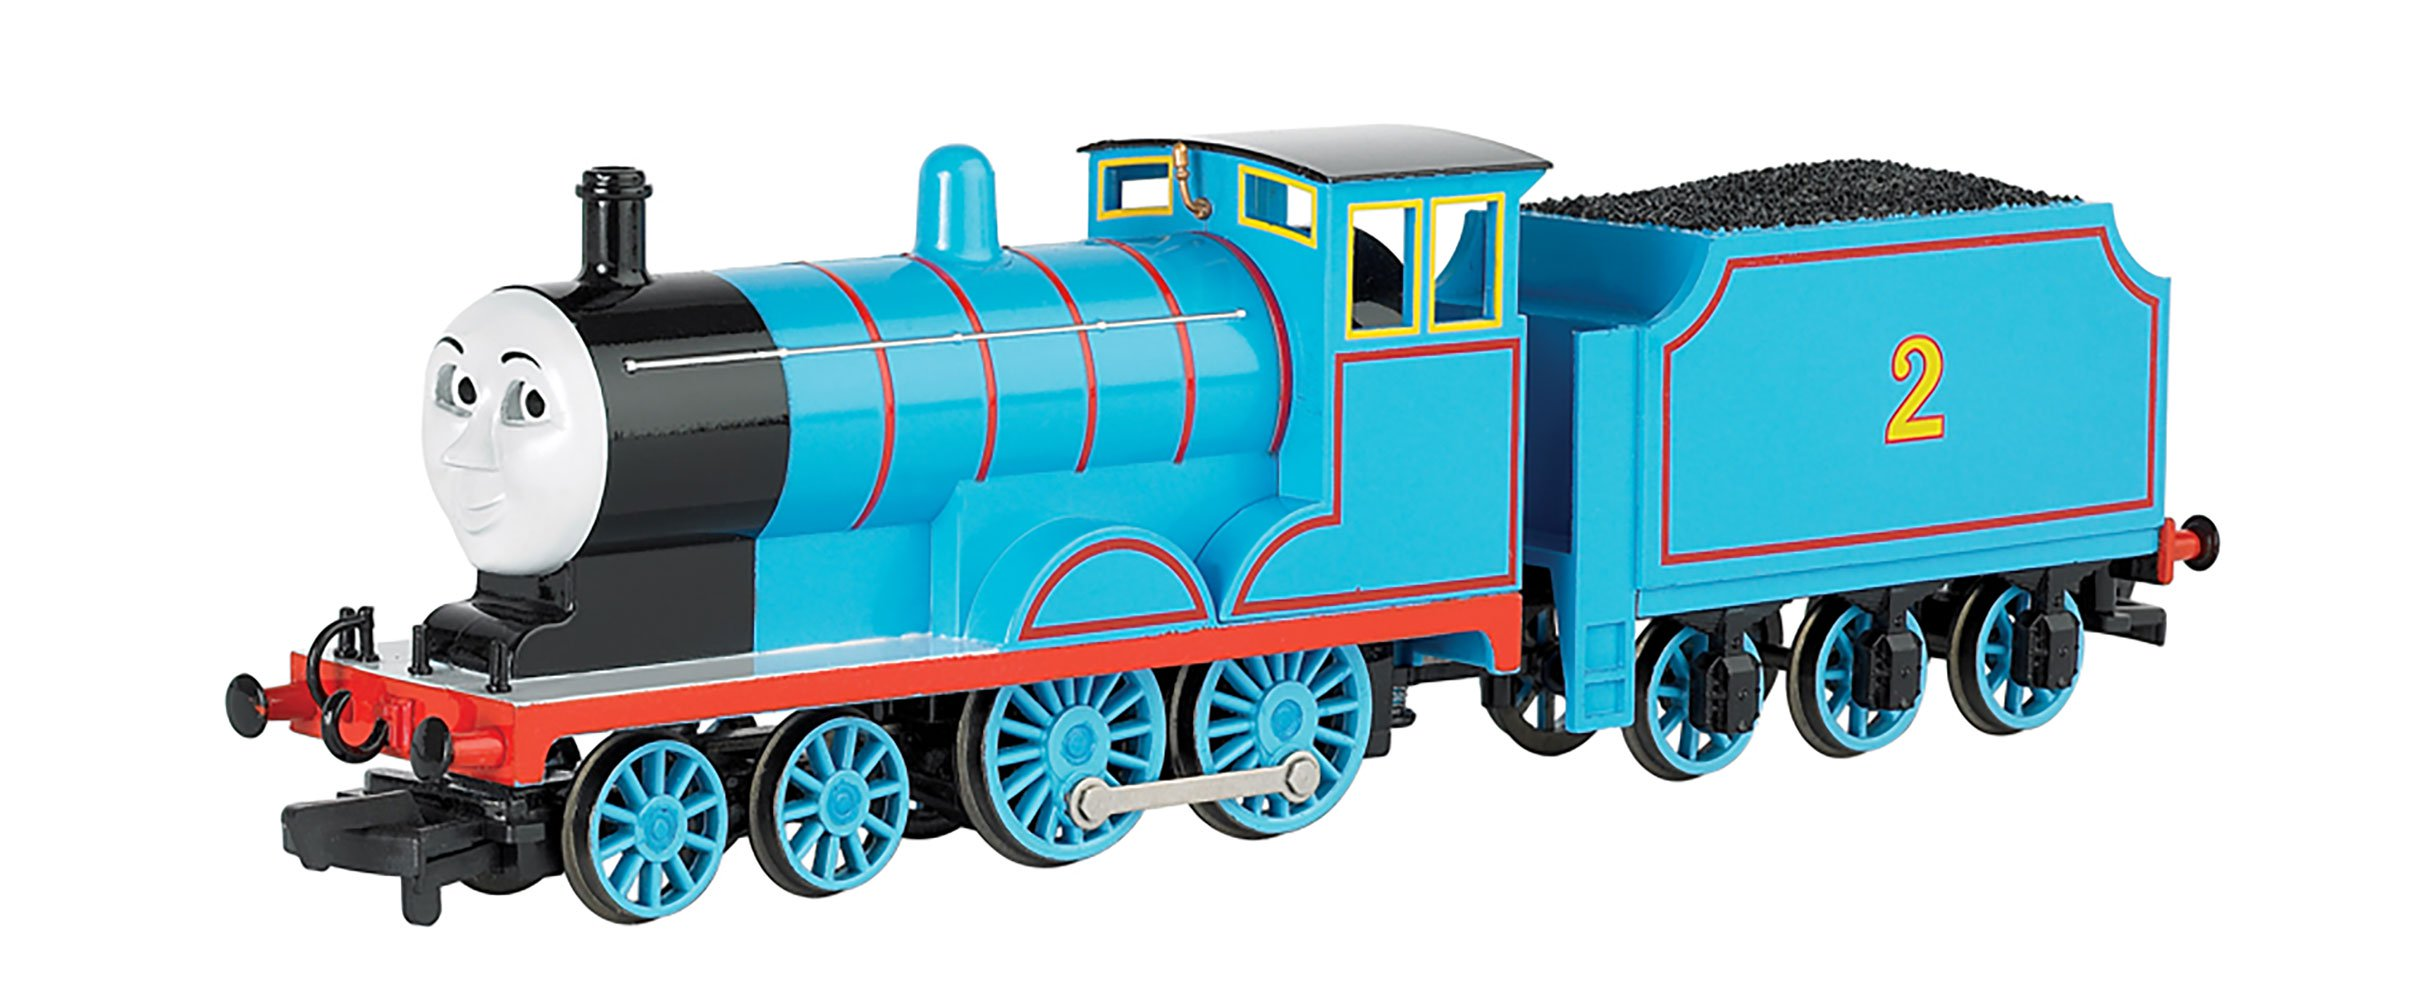 Bachmann Trains Thomas and Friends Edward Locomotive with Moving Eyes, HO Scale Train by Bachmann